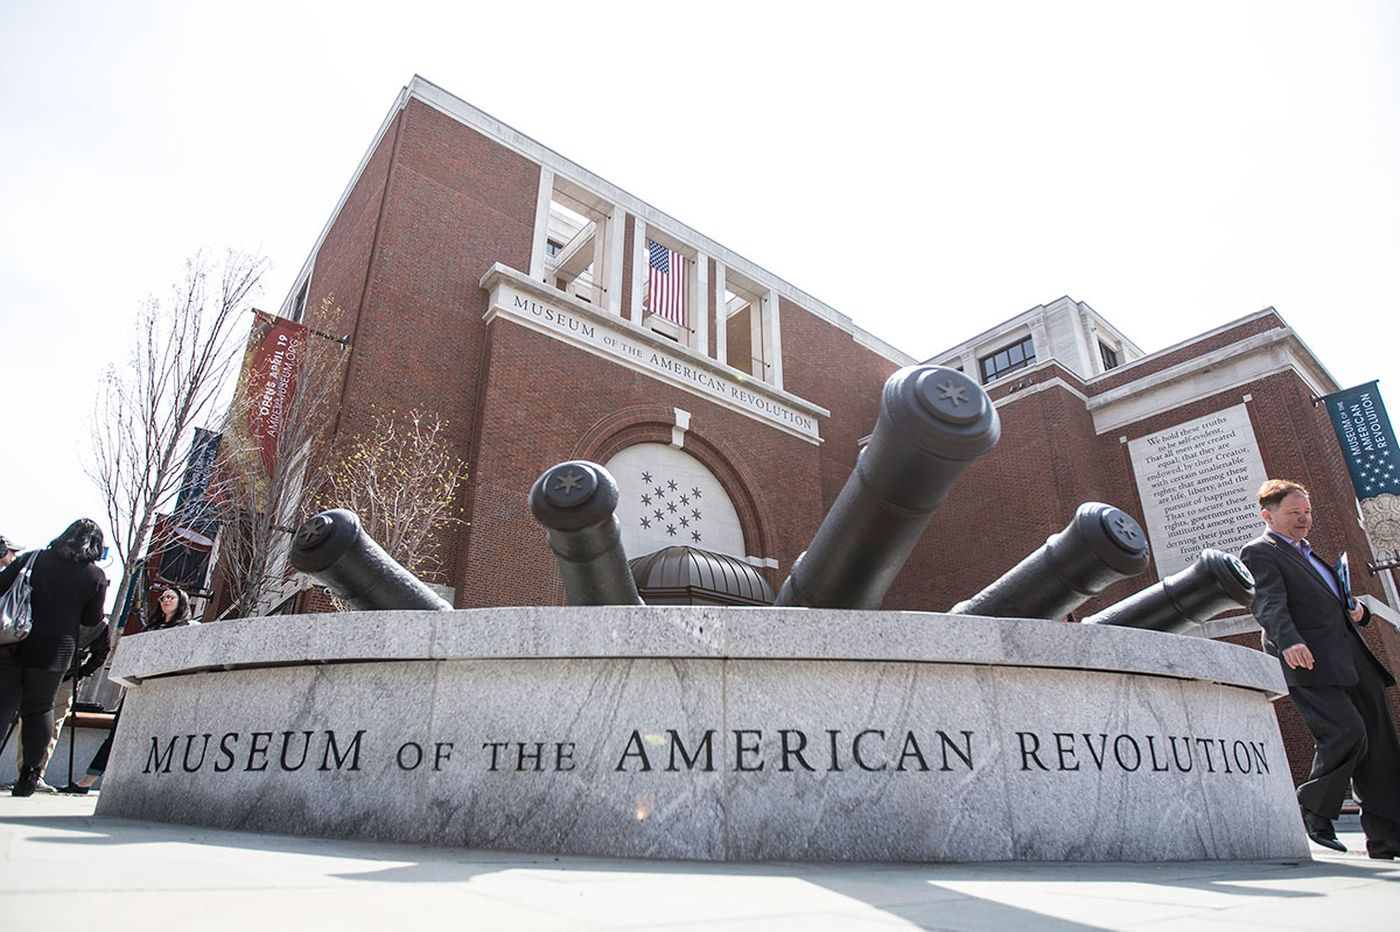 New board chair chosen for Museum of the American Revolution